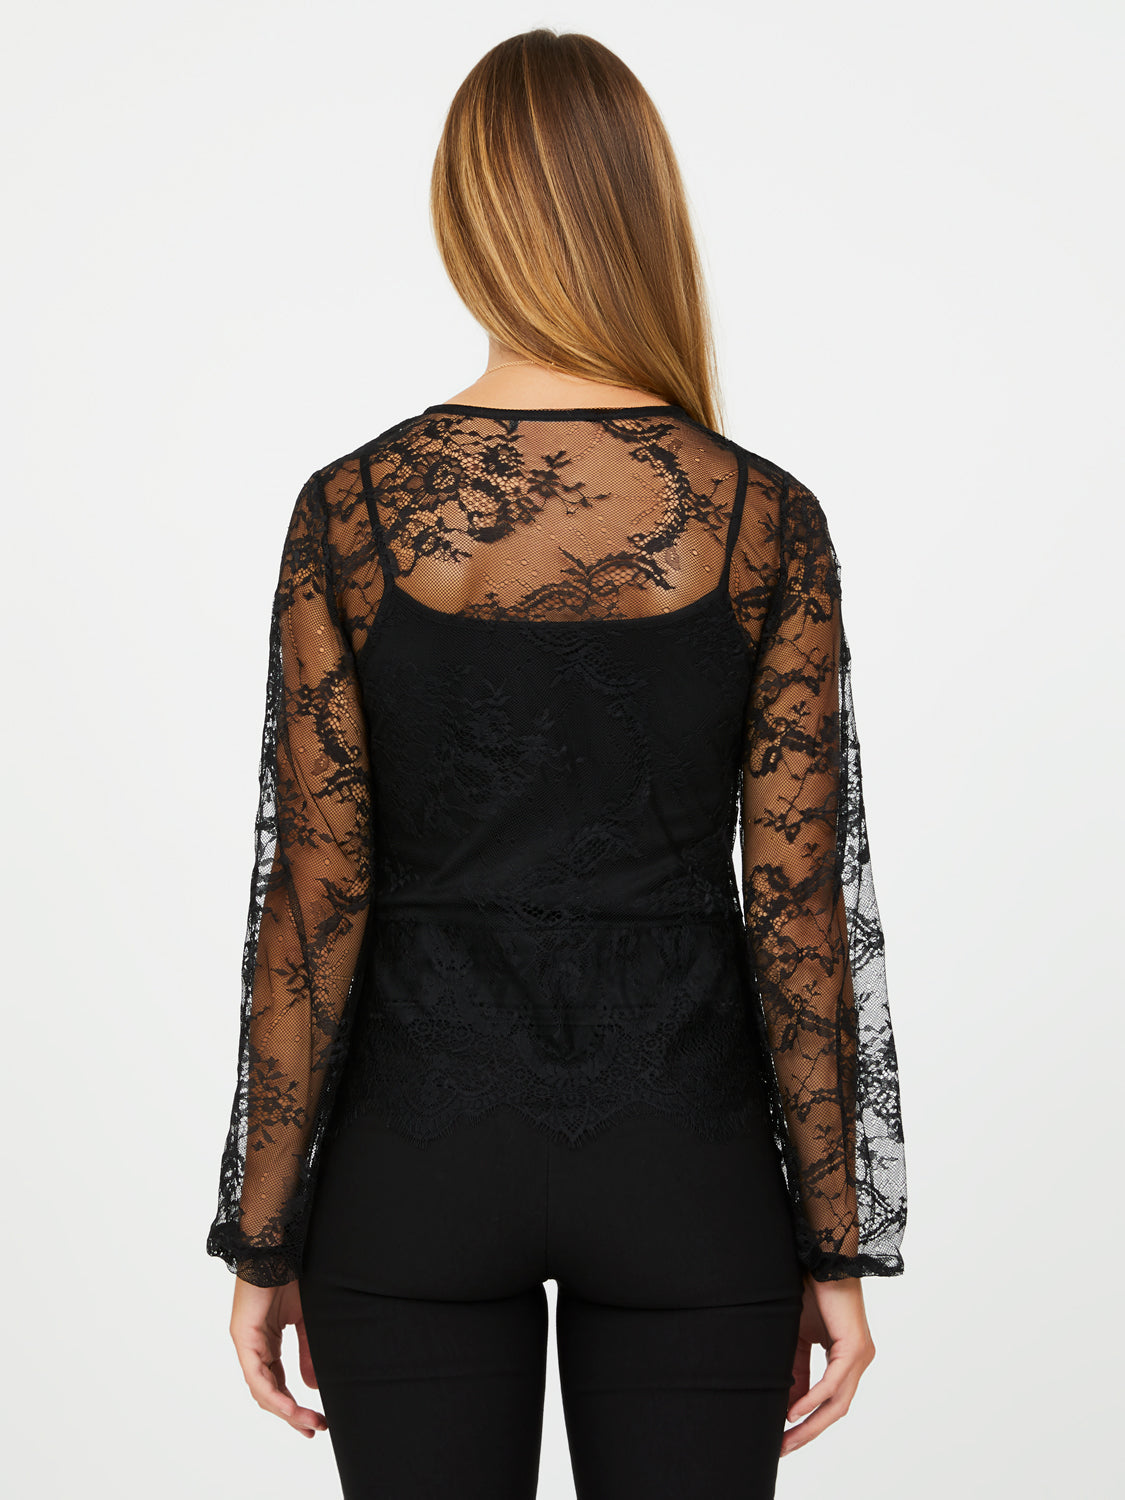 Poof Sleeve Allover Lace Blouse